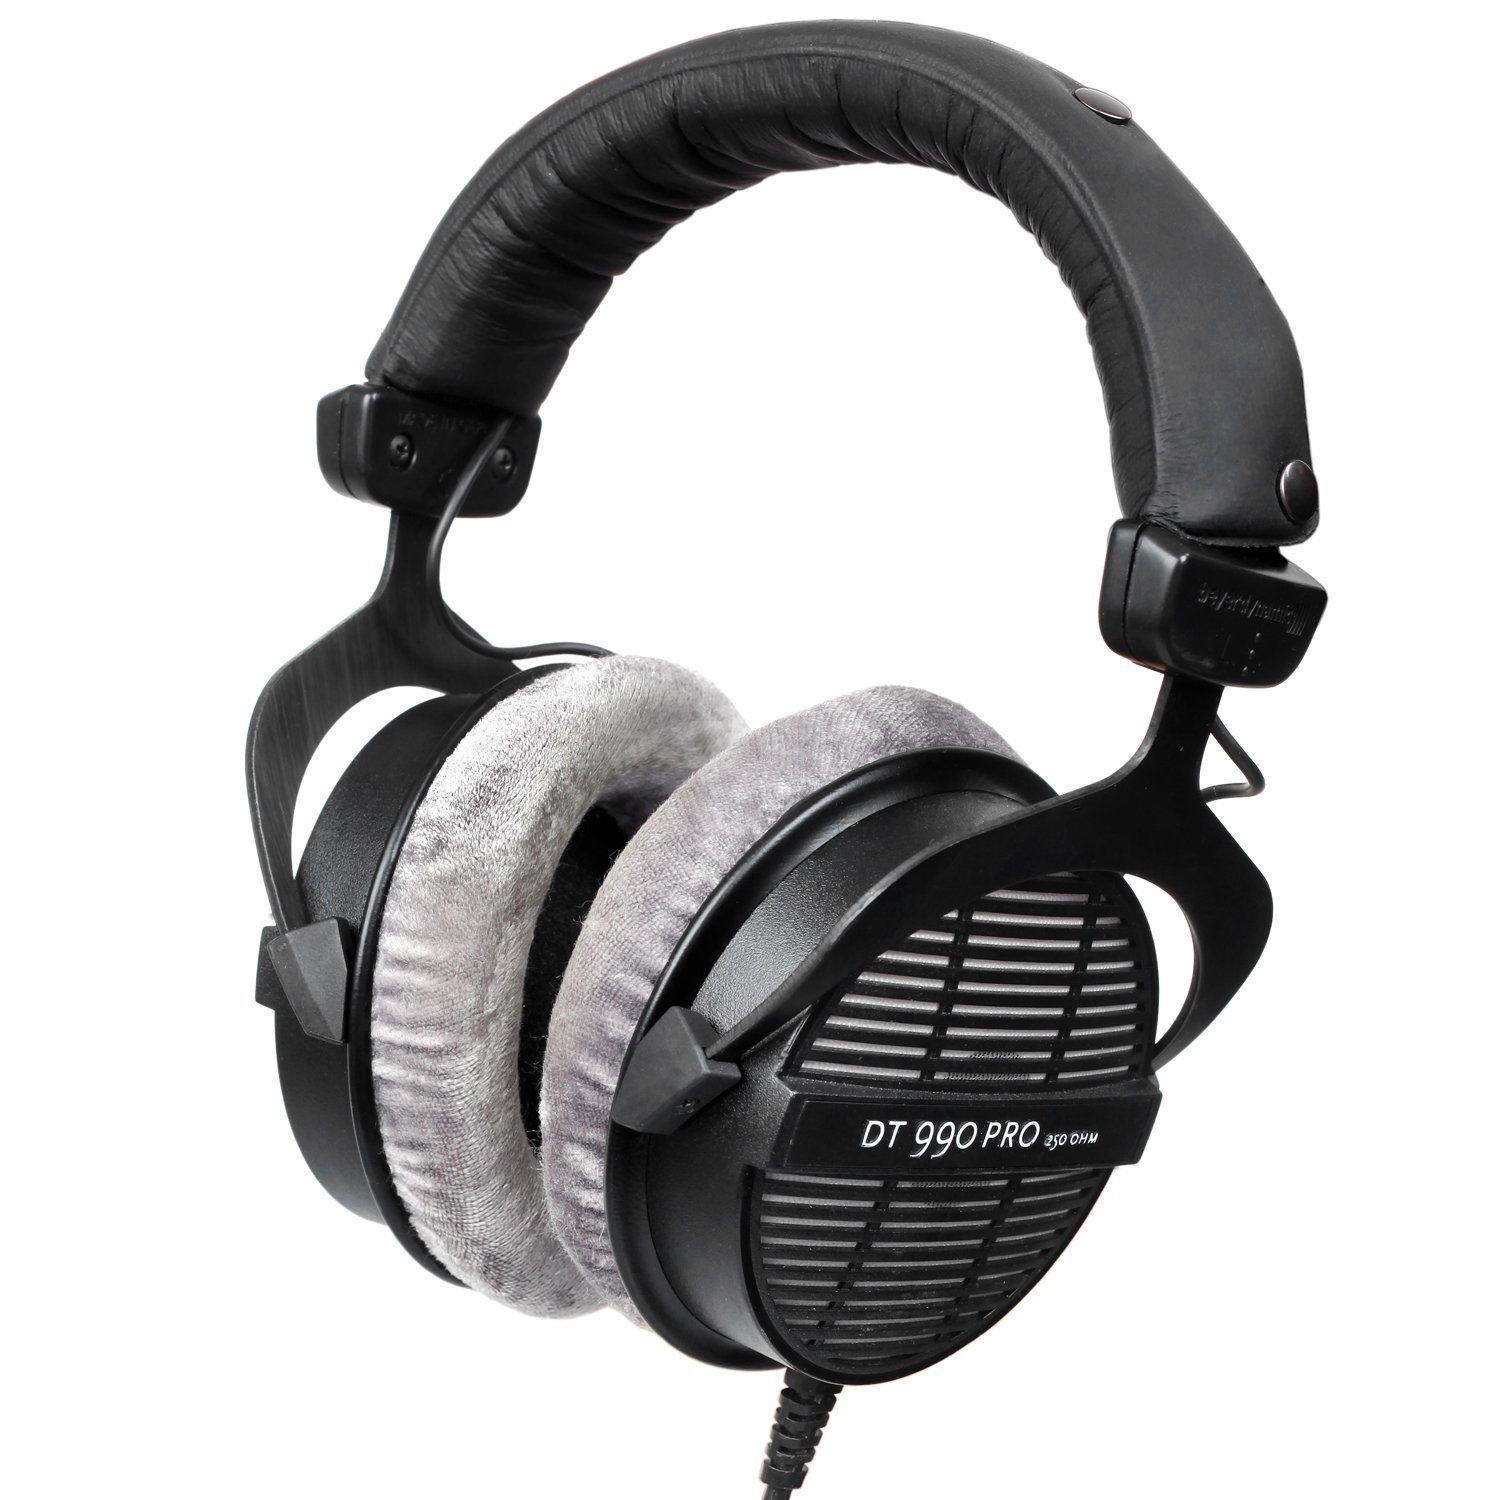 Beyerdynamic DT 990 Pro 250 Ohm Hi-Fi headphones, Professional Studio Headsets, Open Back Headband headpones Made in Germany beyerdynamic dt 880 32 ohm